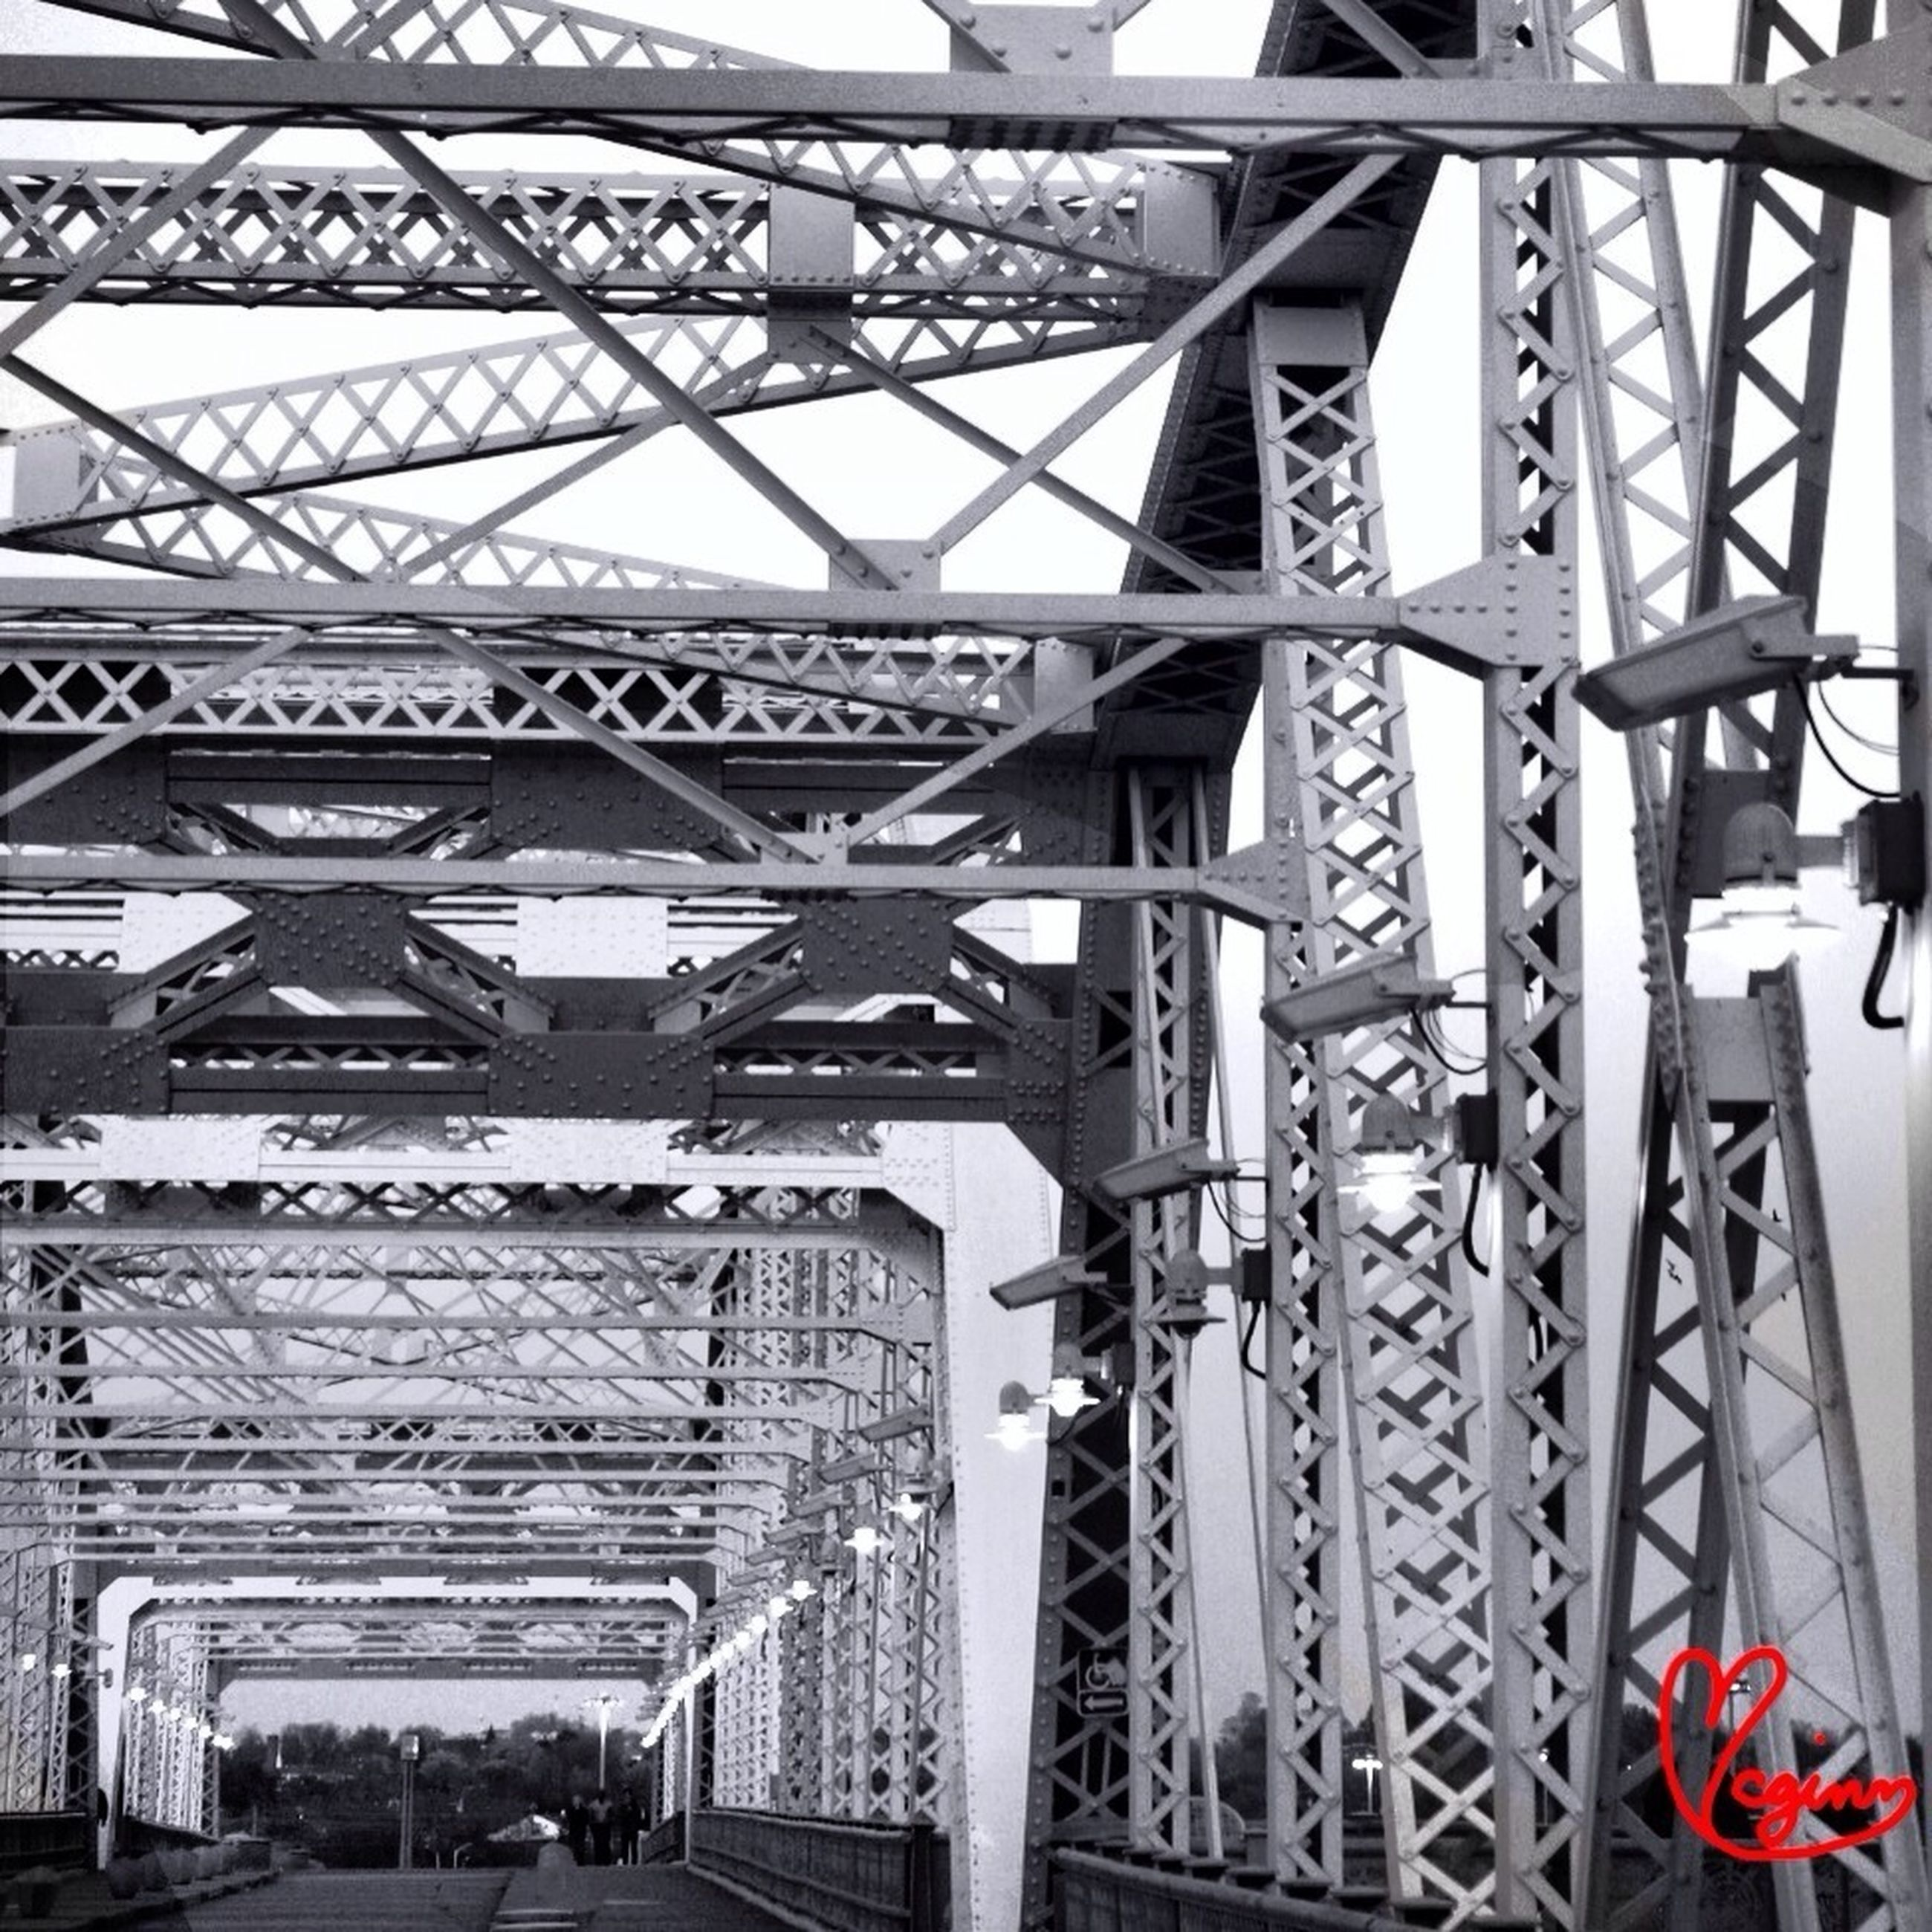 architecture, built structure, metal, low angle view, metallic, connection, building exterior, railing, bridge - man made structure, transportation, engineering, day, rail transportation, no people, outdoors, clear sky, sky, travel destinations, pattern, travel